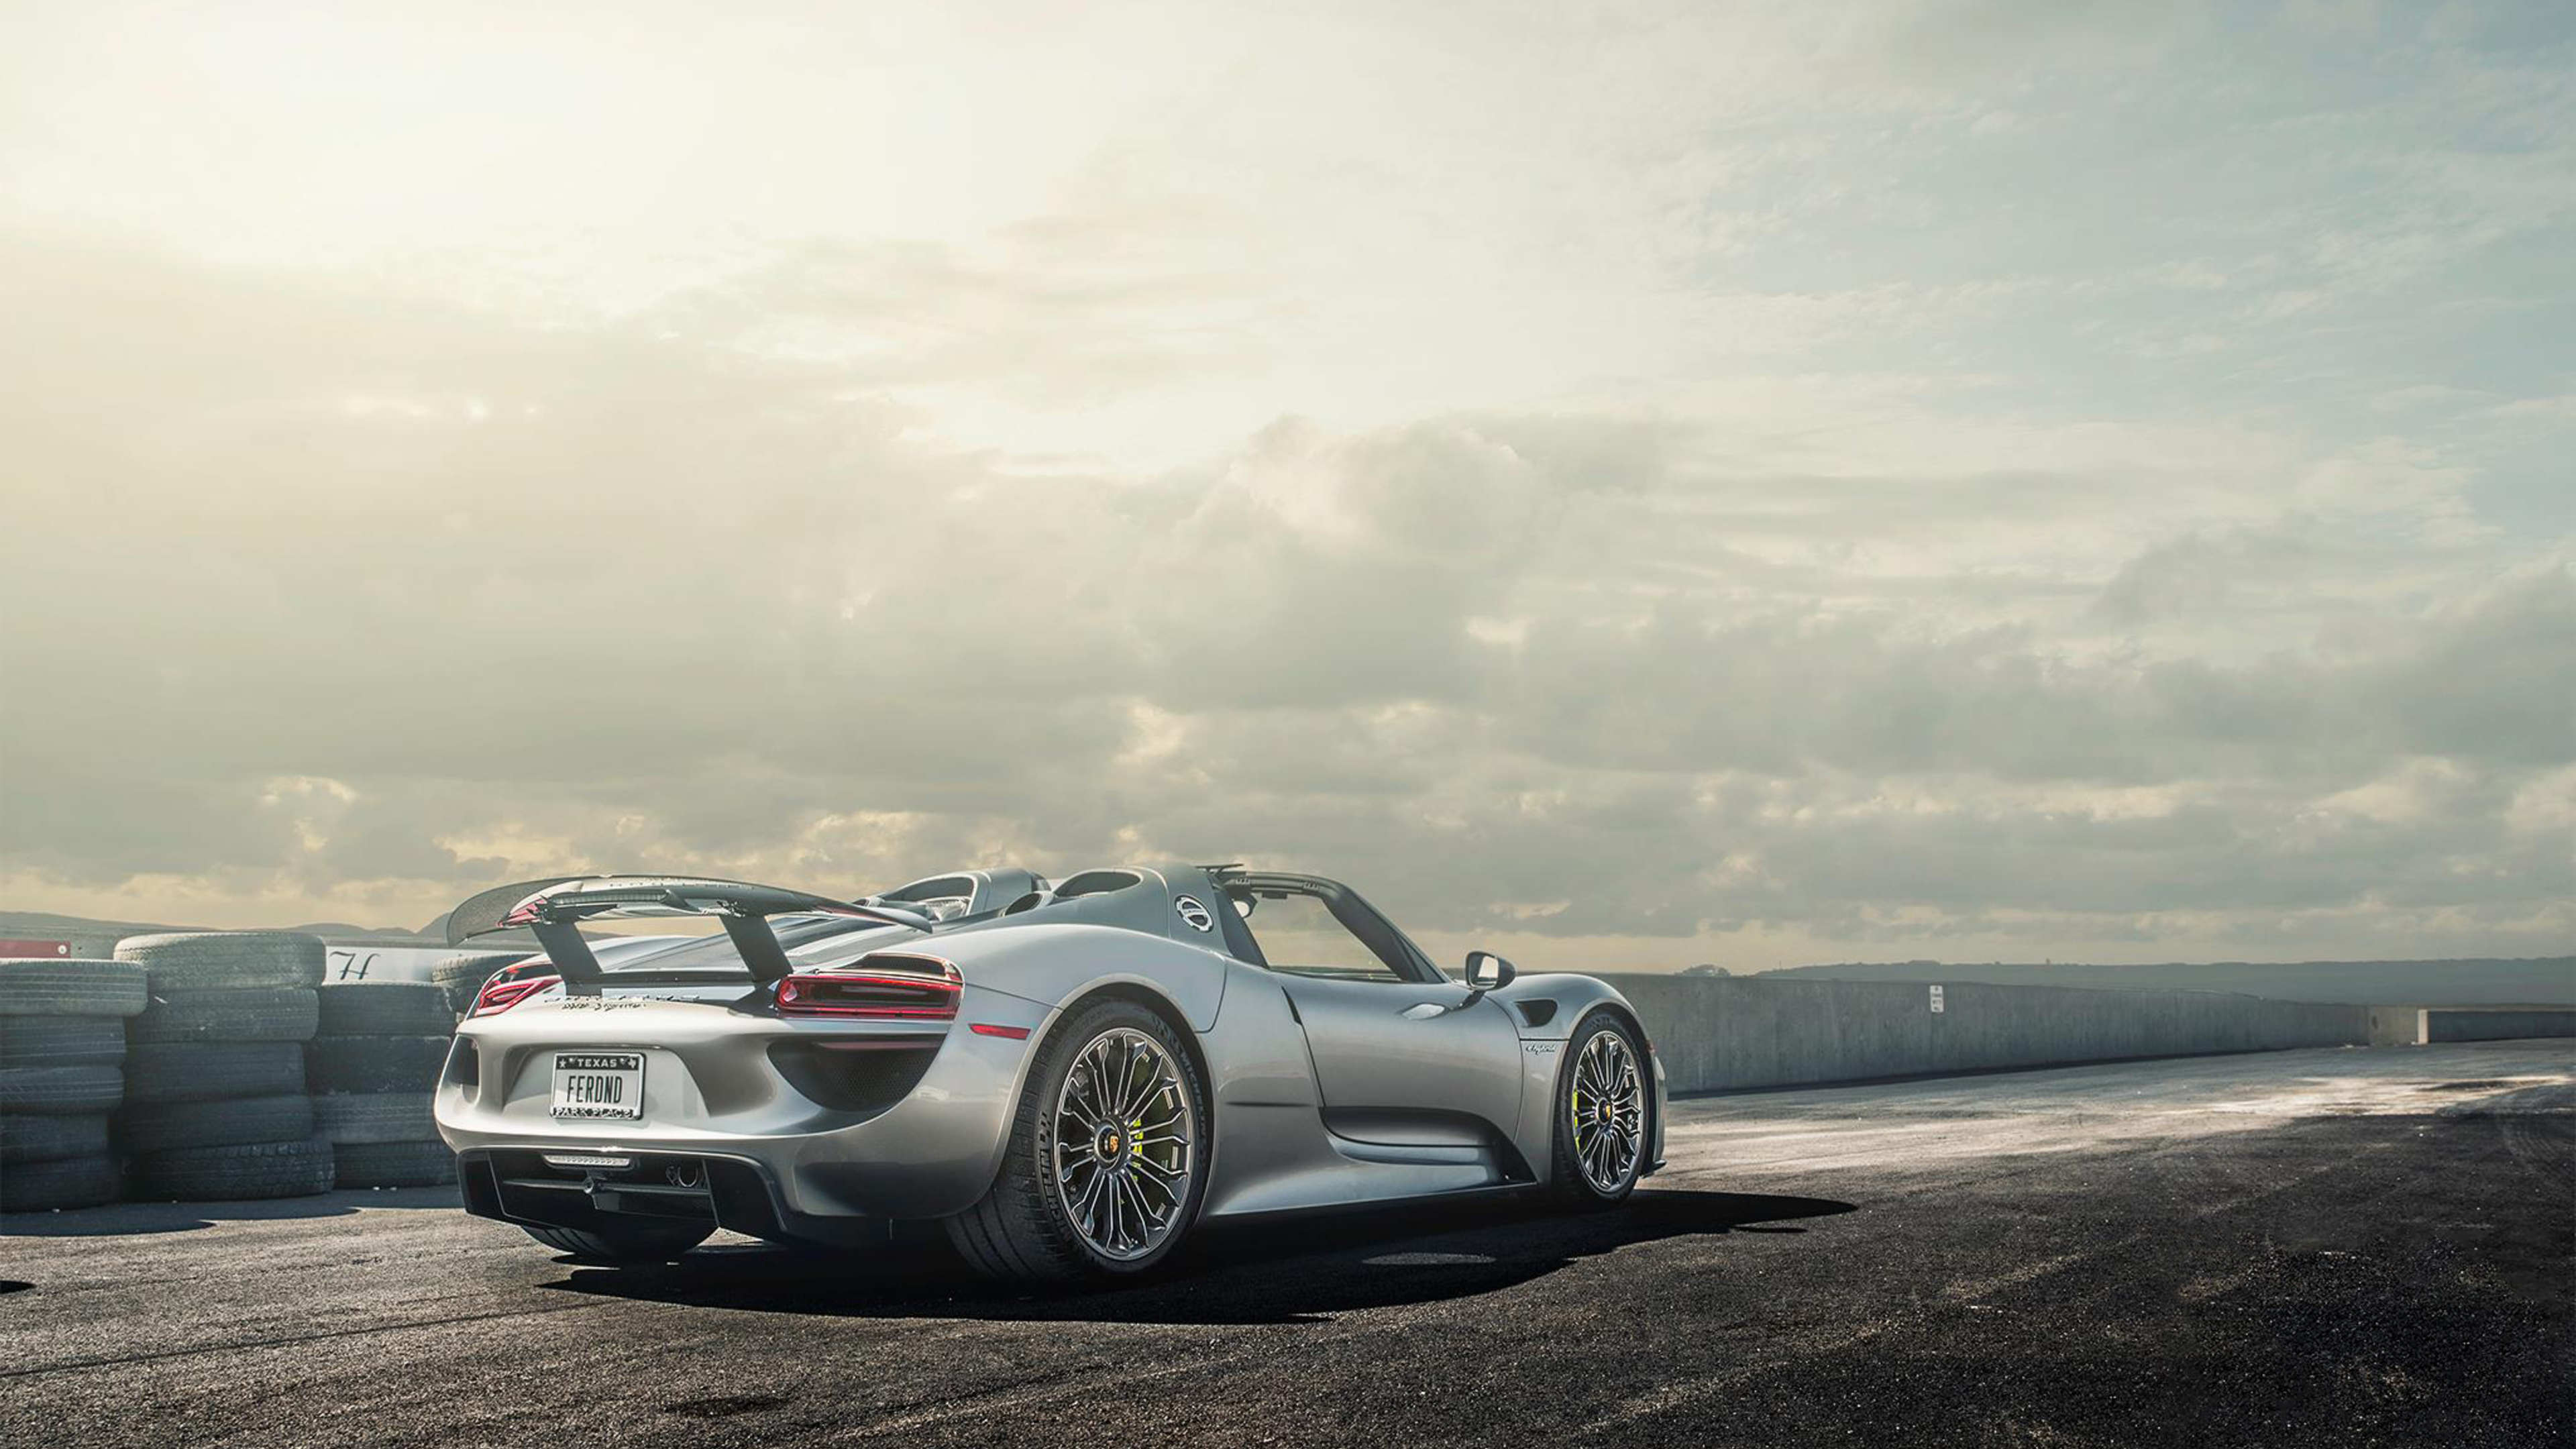 porsche 918 spyder iphone wallpaper porsche 918 spyder. Black Bedroom Furniture Sets. Home Design Ideas